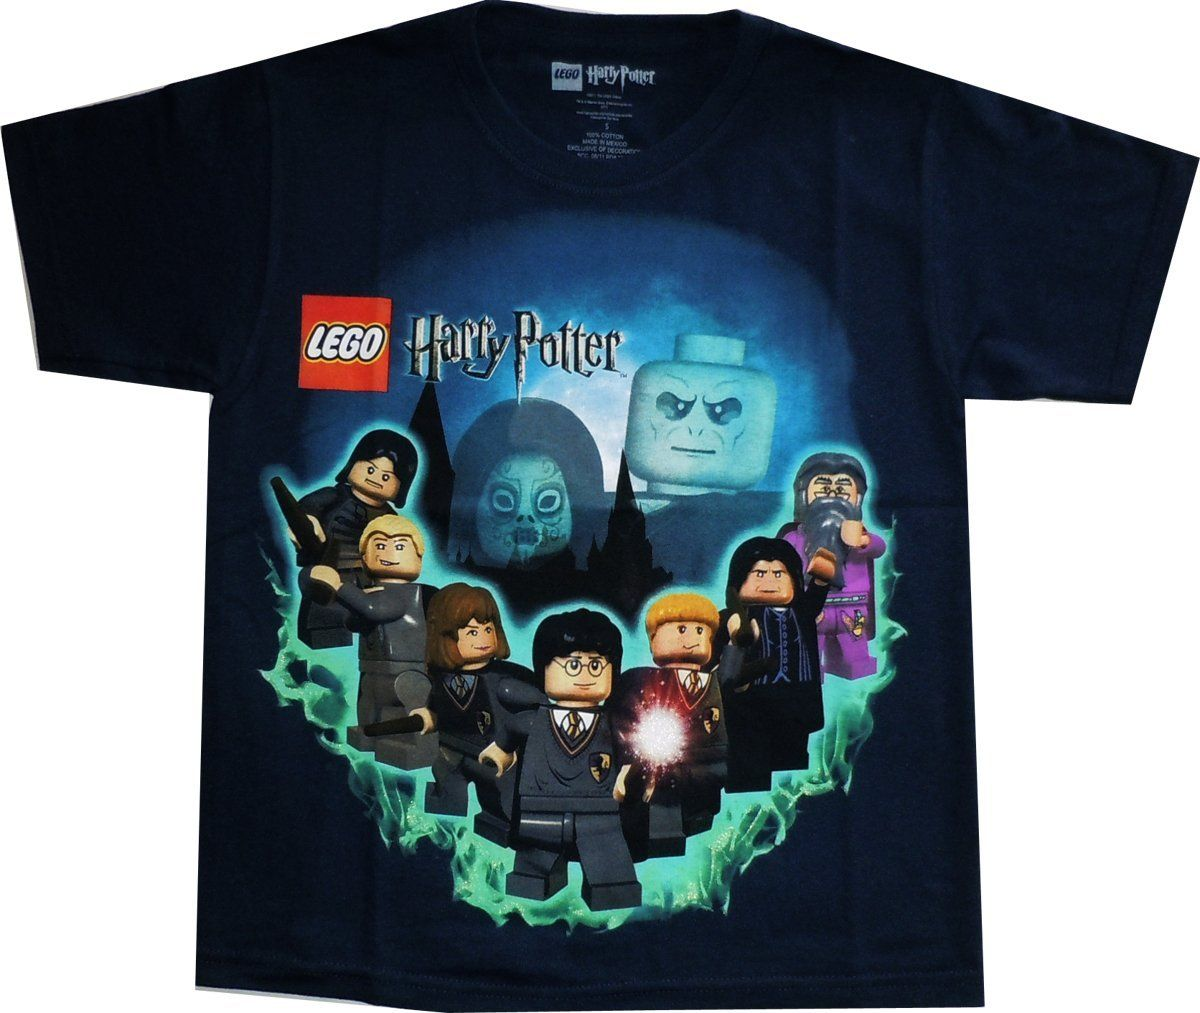 Harry Potter Lego: Hogwarts Wizards Navy Youth T Shirt | Lego ...